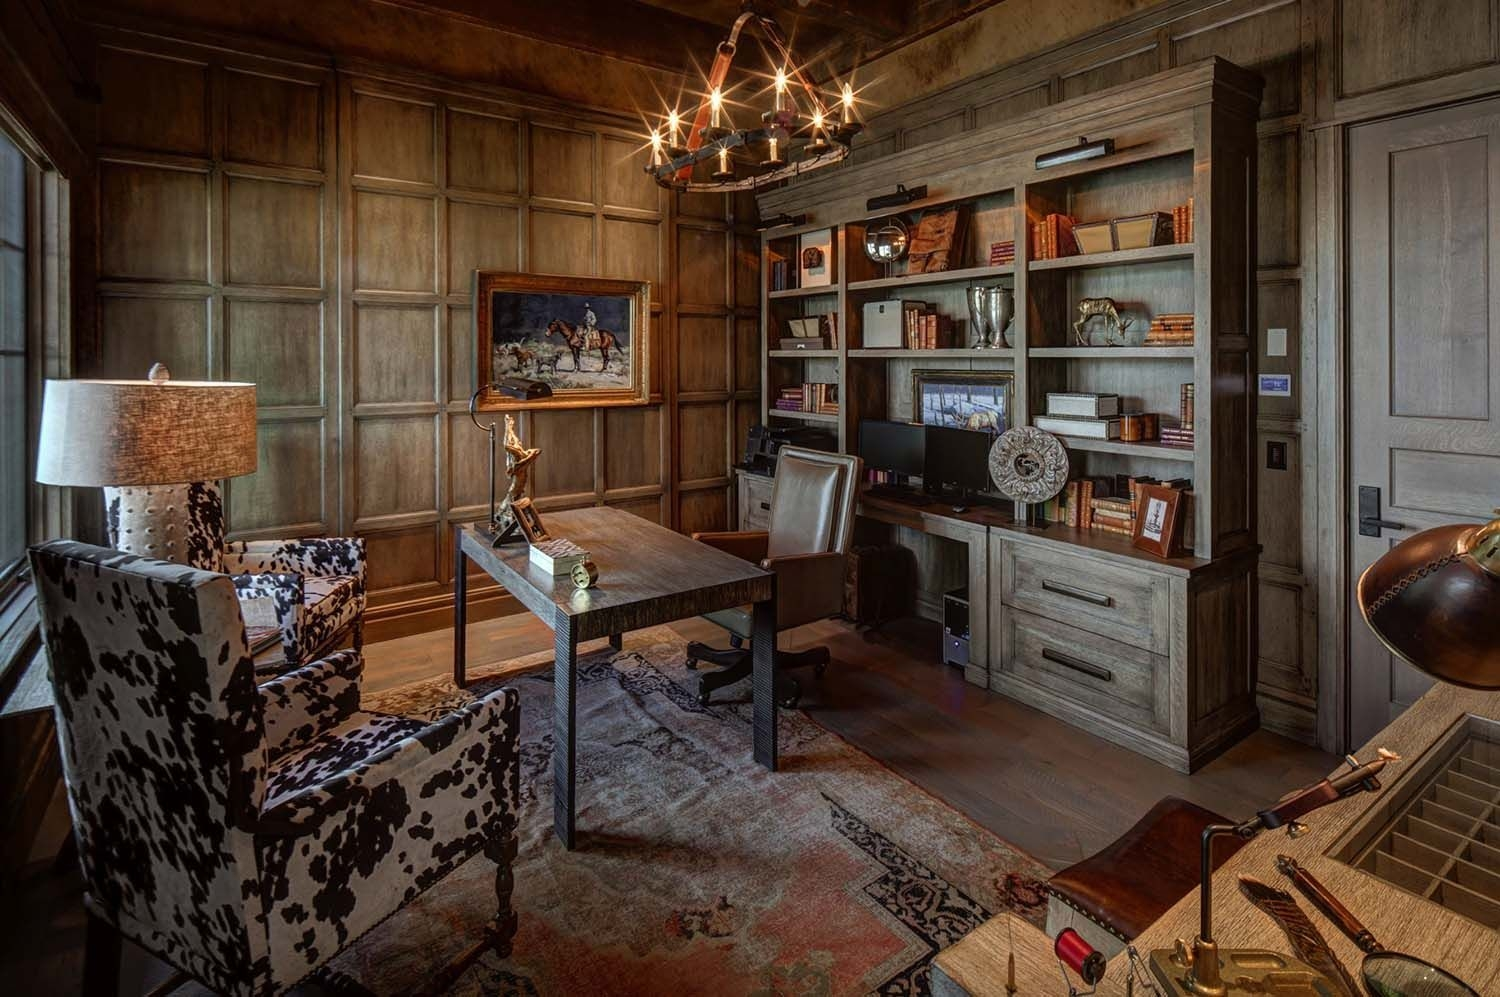 44 Modern Rustic Decorating Ideas For Your Home Office 08